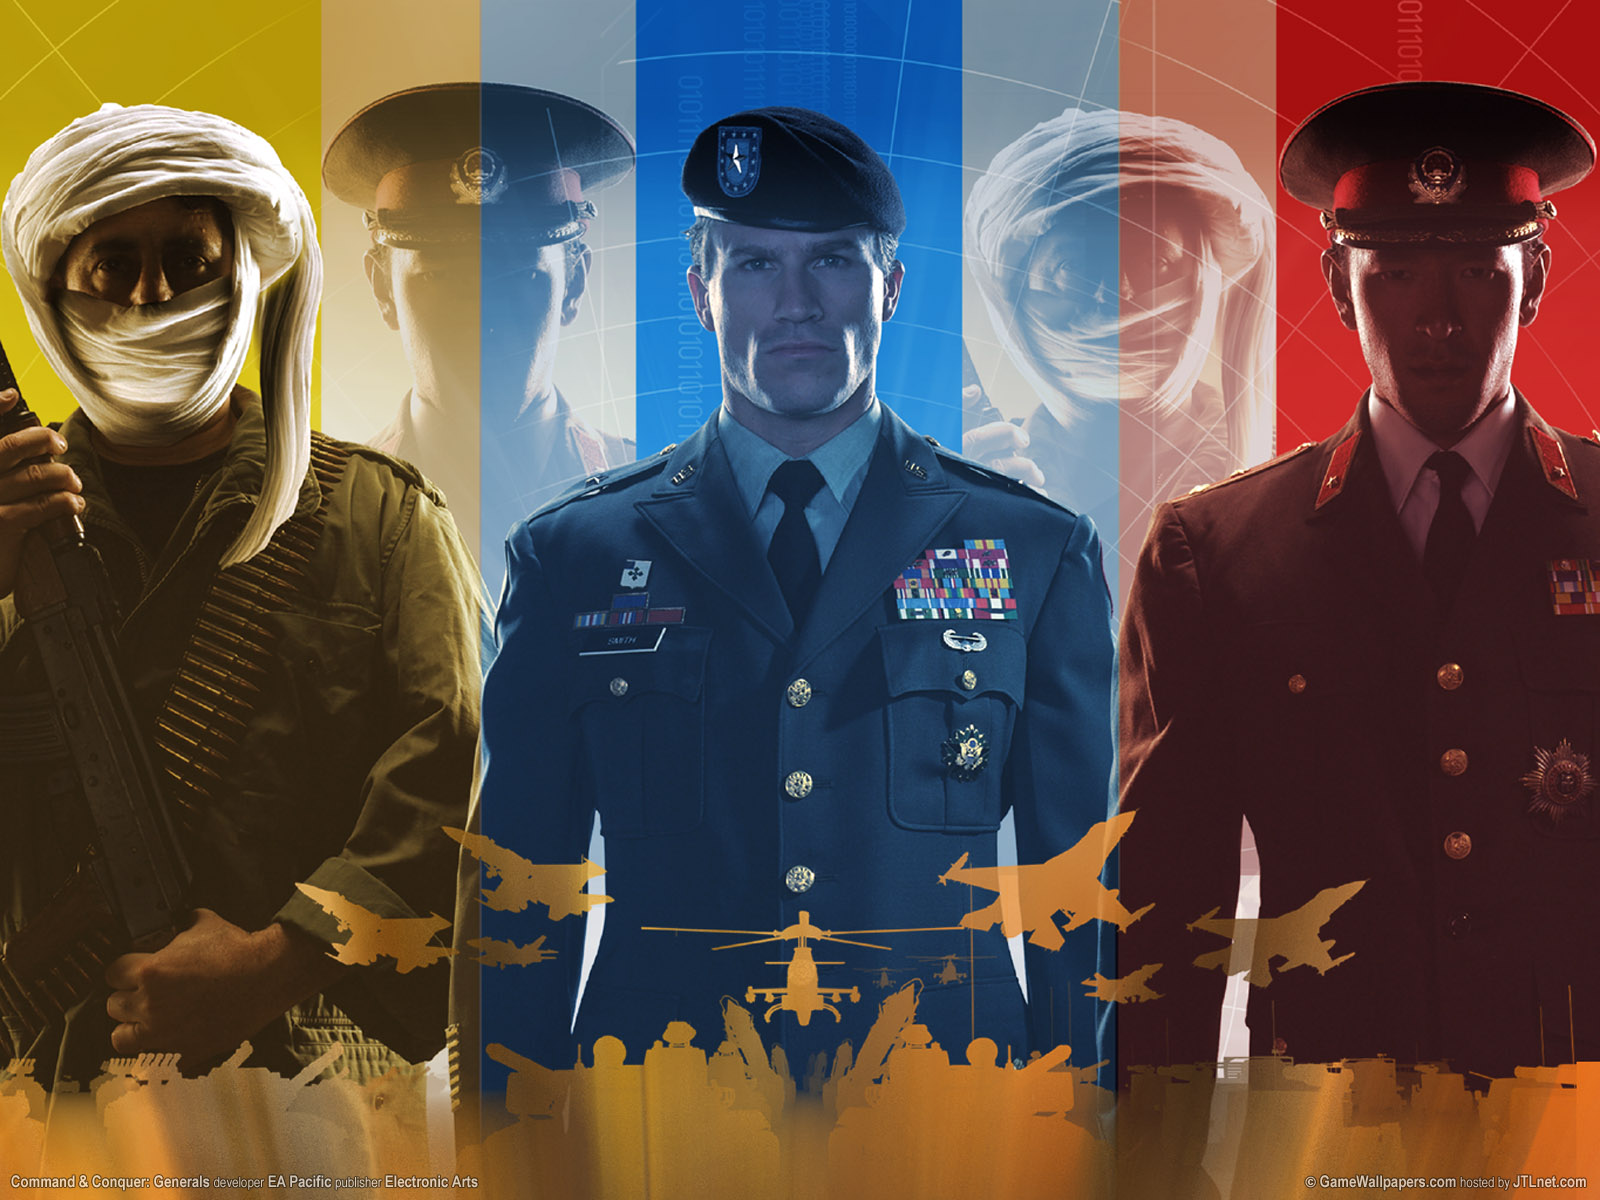 Command And Conquer Wallpaper: Command & Conquer: Generals Wallpapers